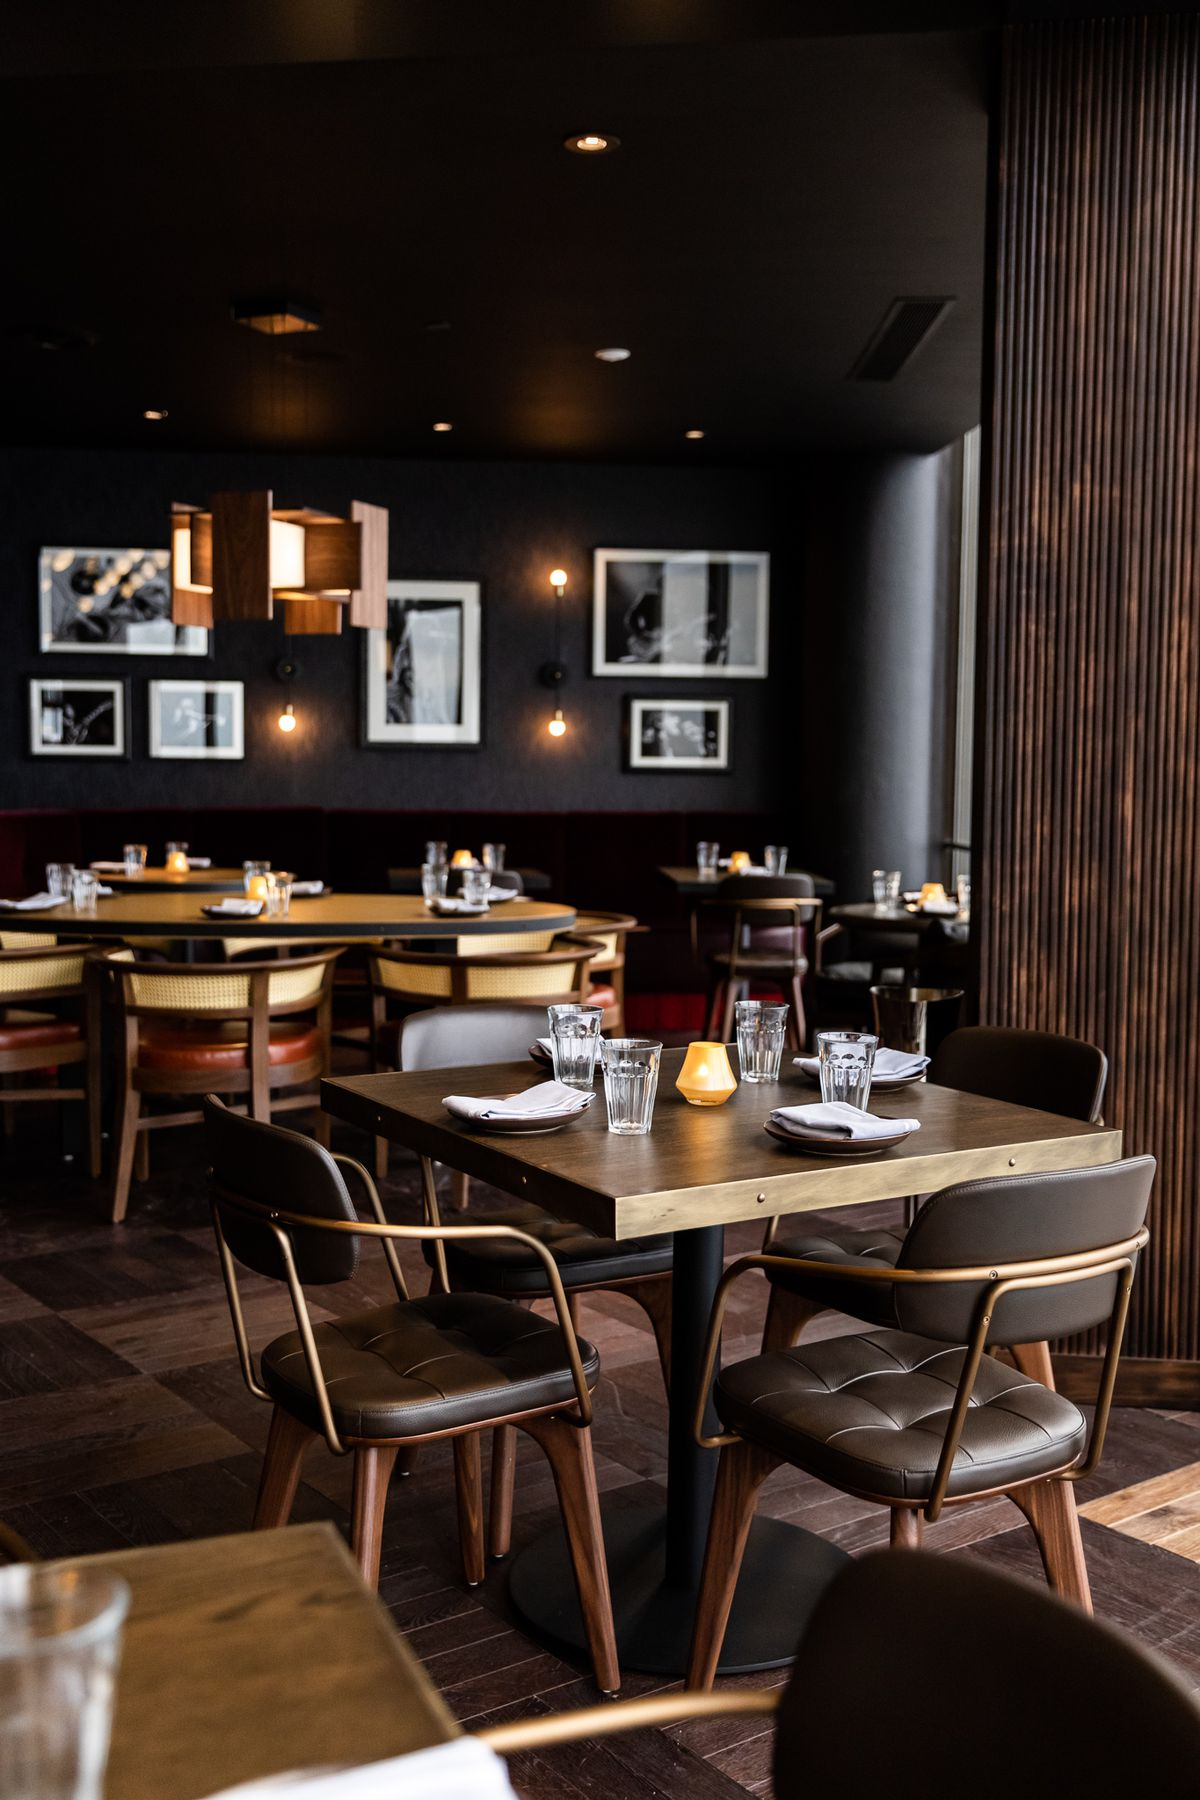 A black dining room with mid-century wood paneling and black and white photos on the walls.